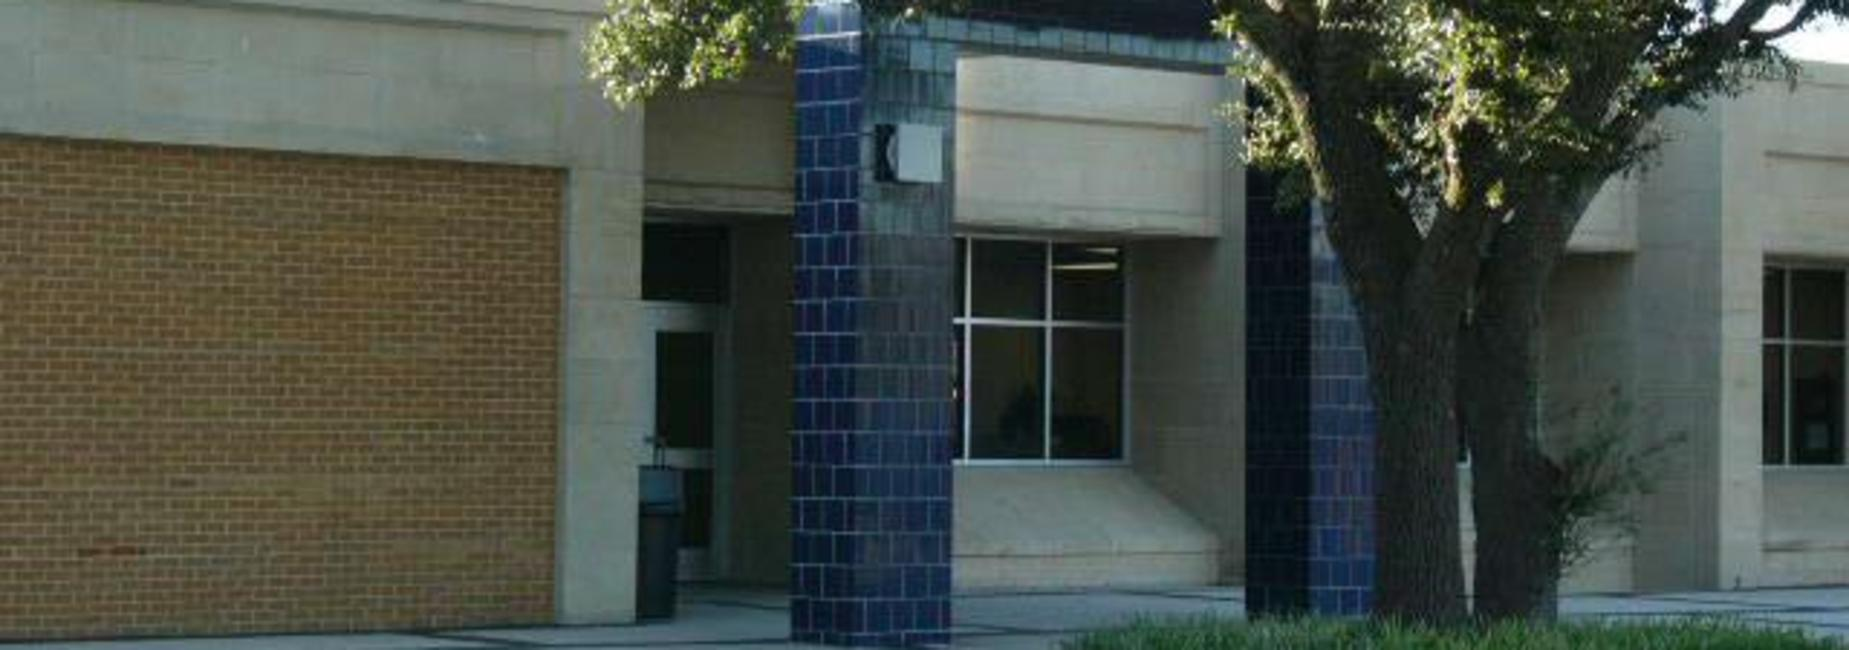 Front entrance to the Ninth Grade Center campus